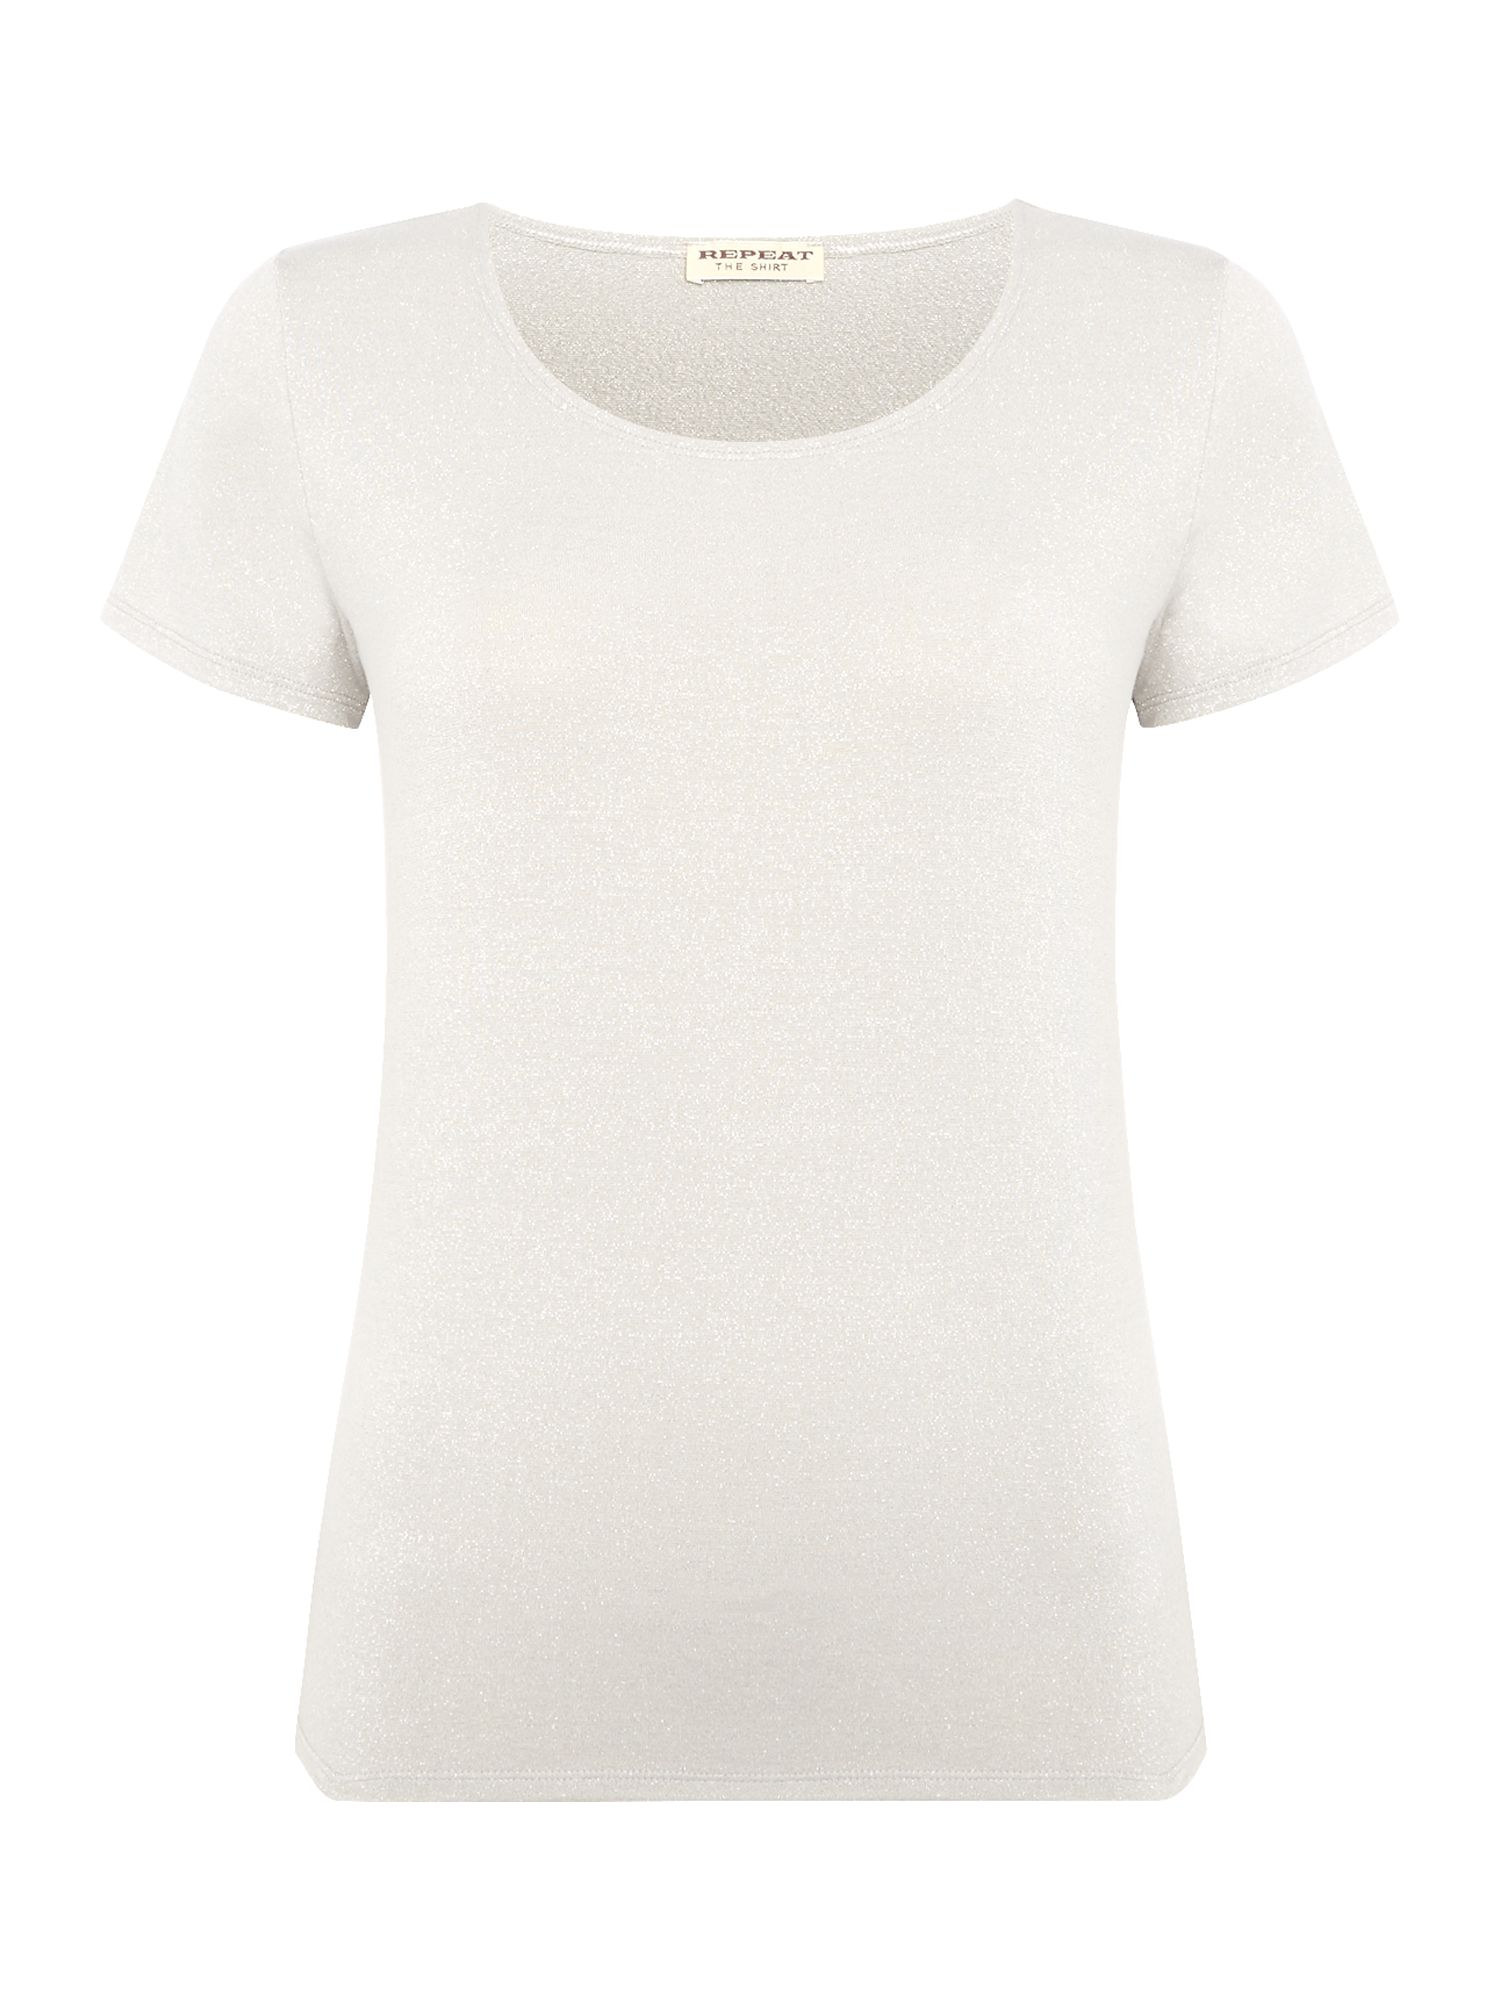 Repeat Cashmere Repeat Cashmere Short sleeve matallic top, Light Grey